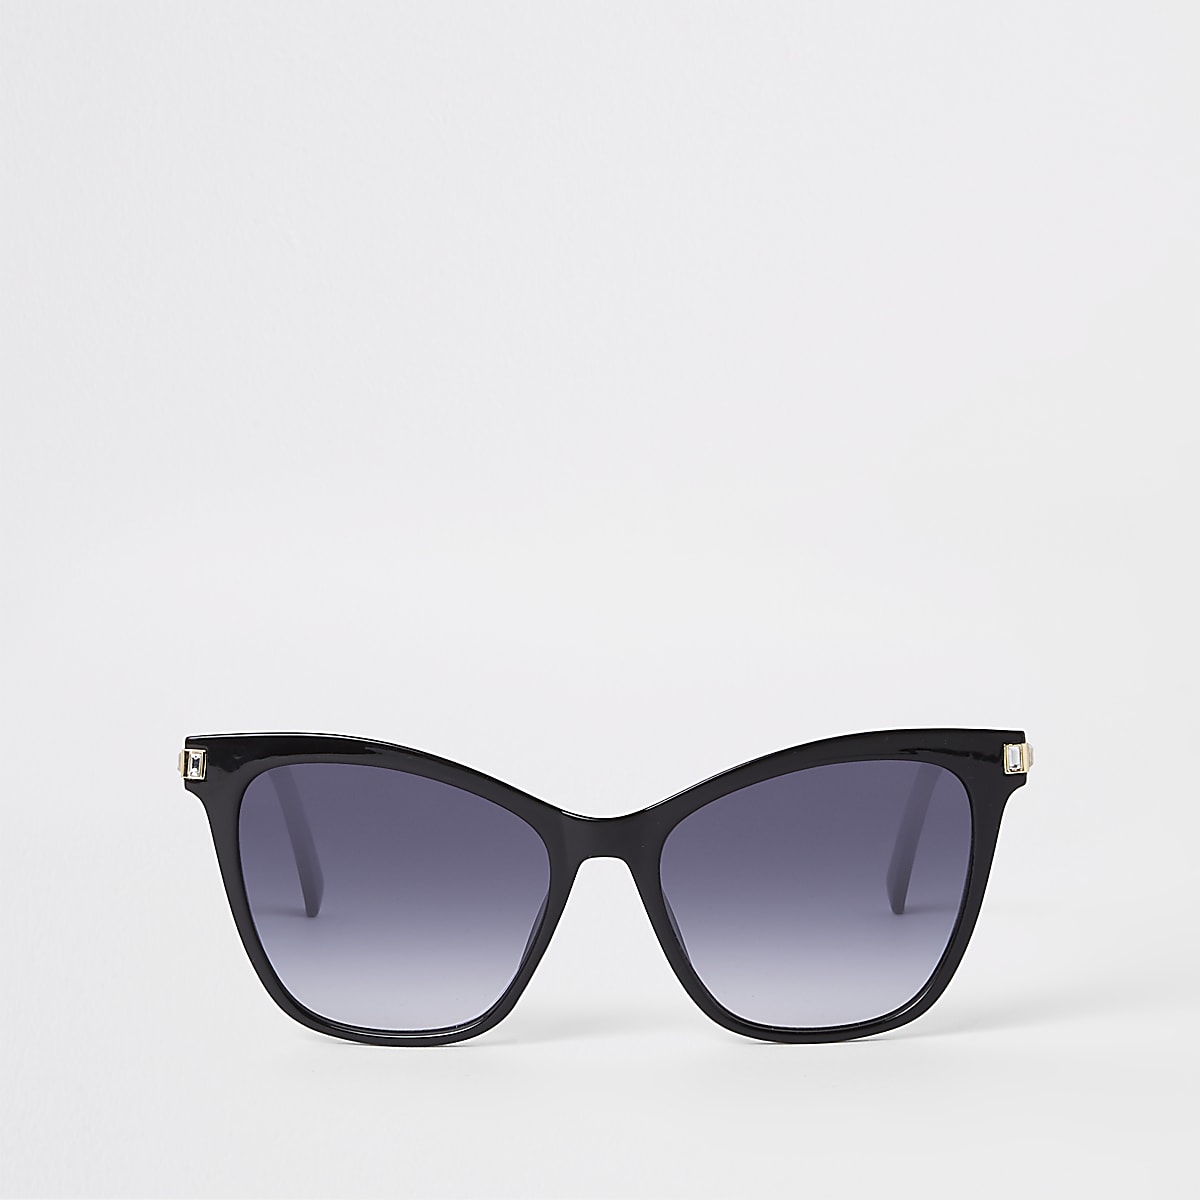 Black diamante trim sunglasses